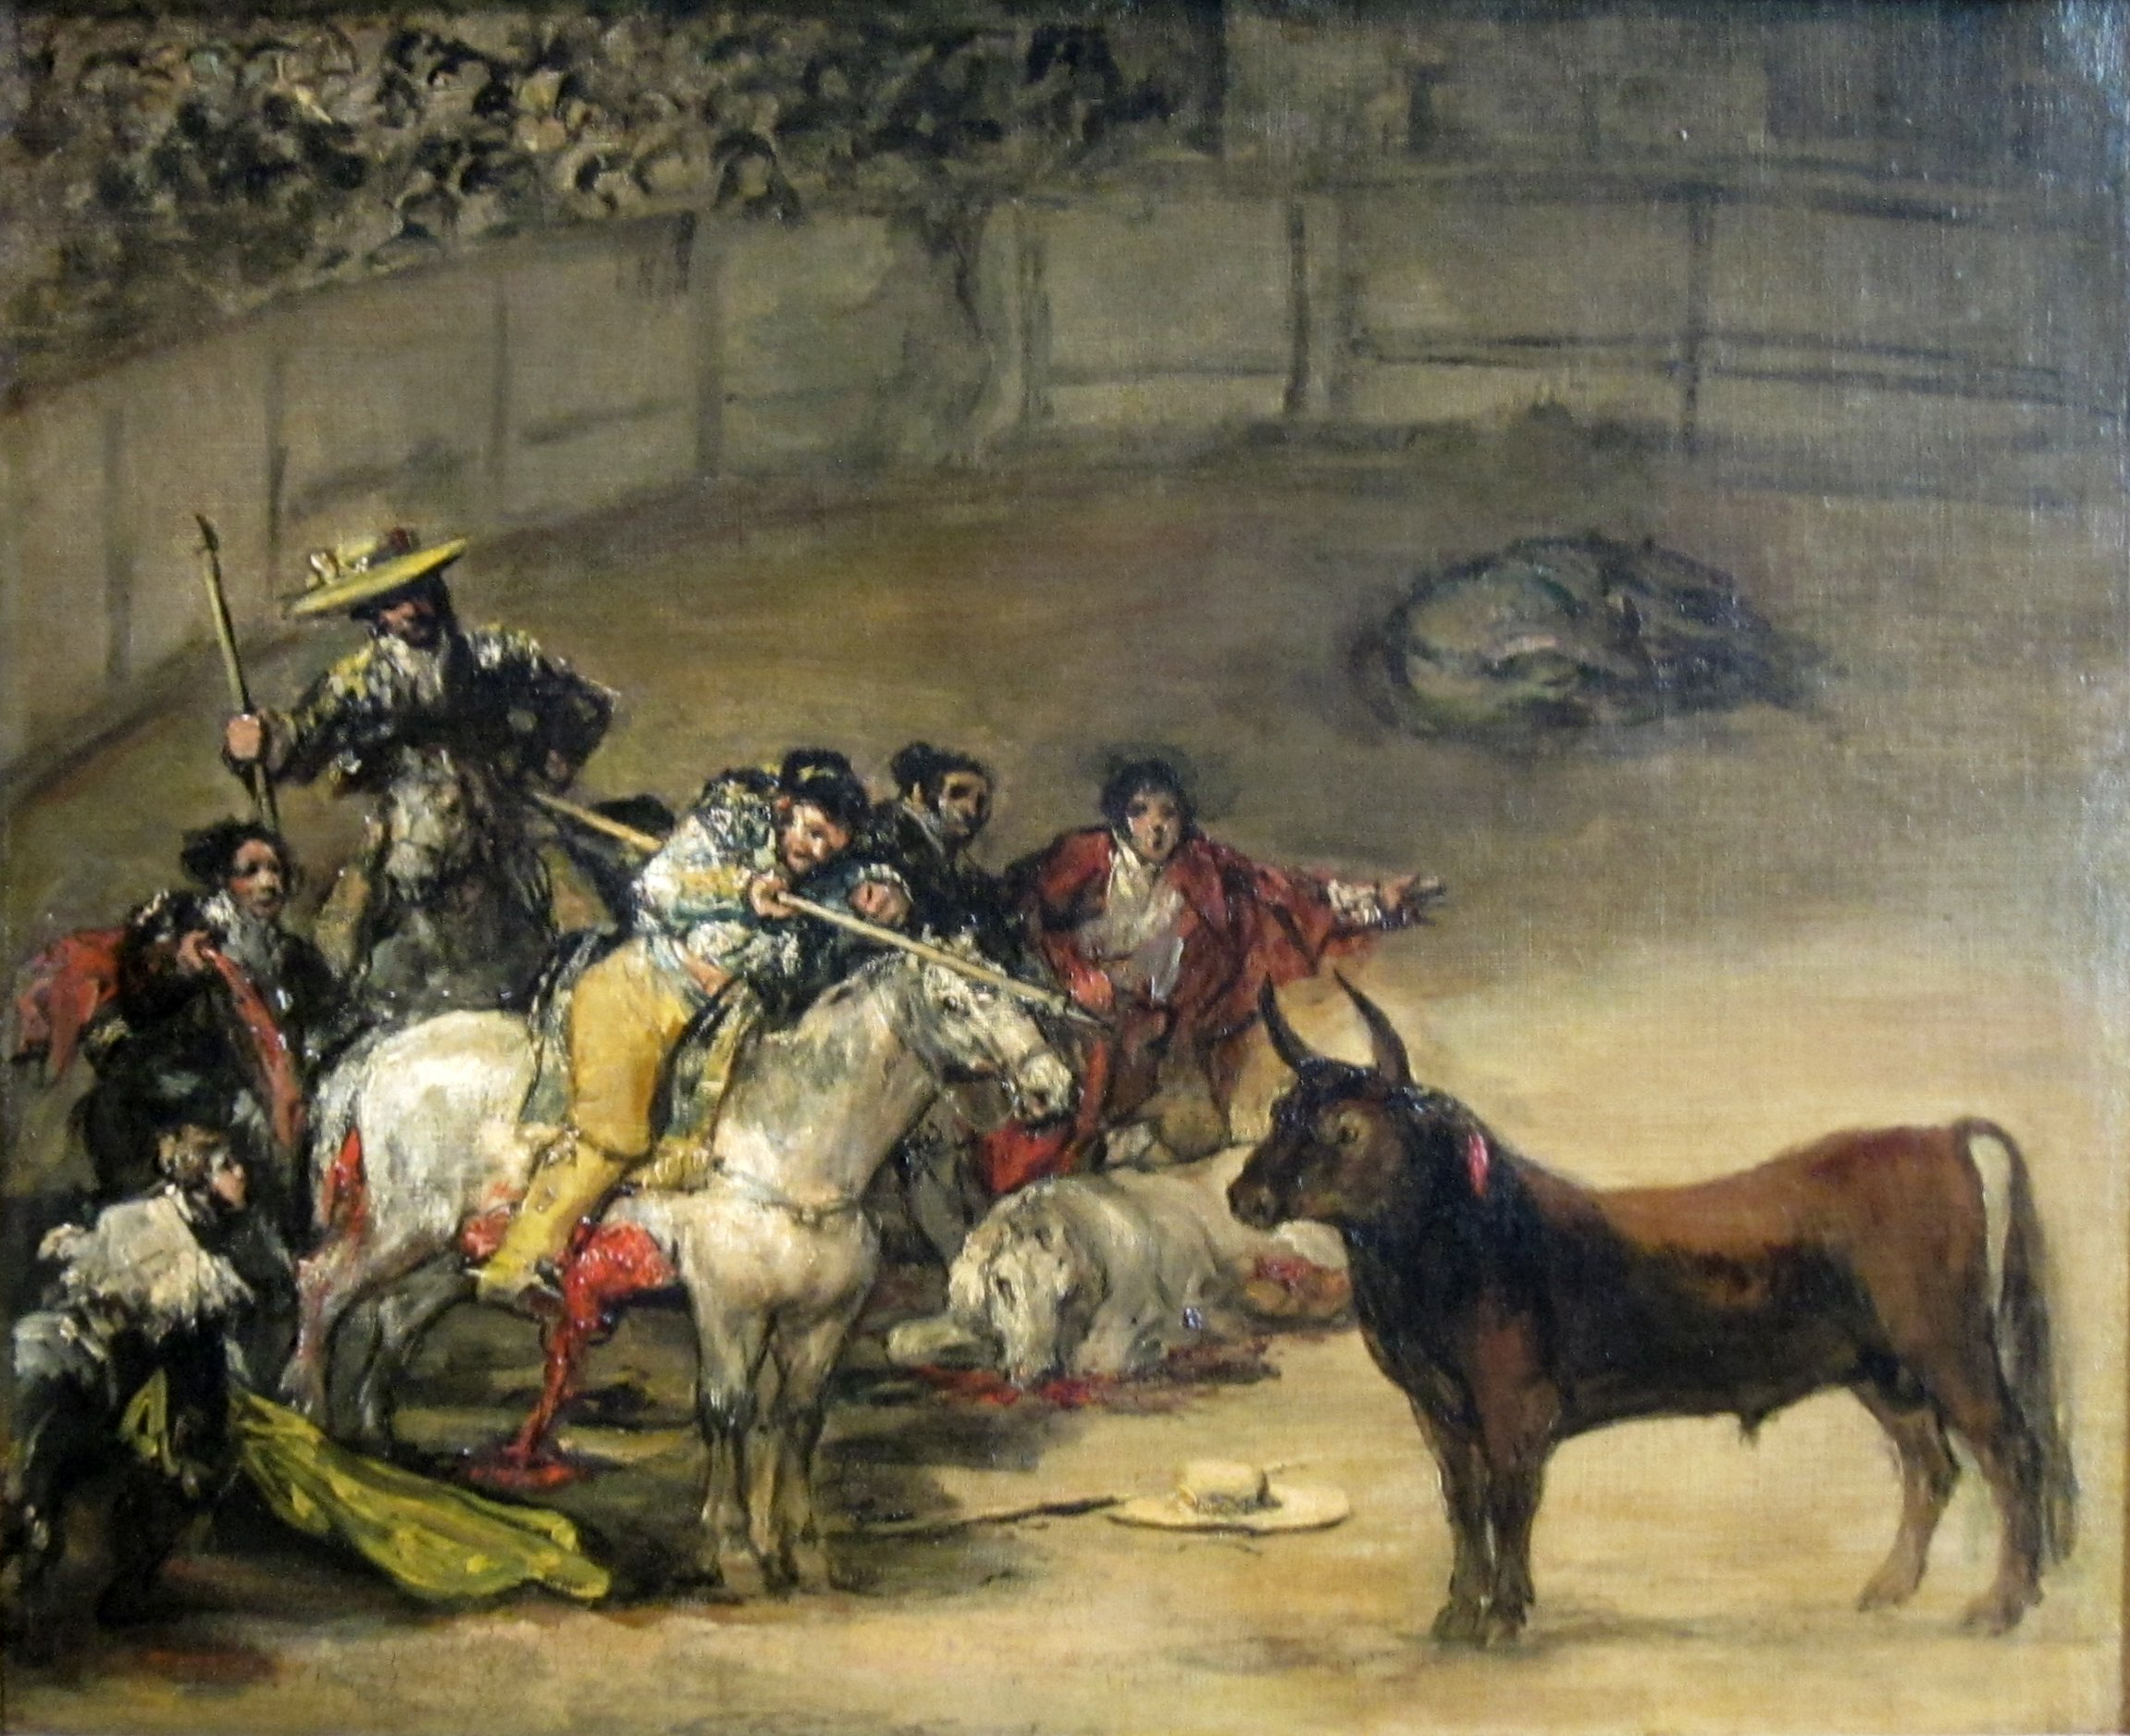 File:Bullfight, Suerte de Varas by Francisco de Goya, 1824, Getty Center